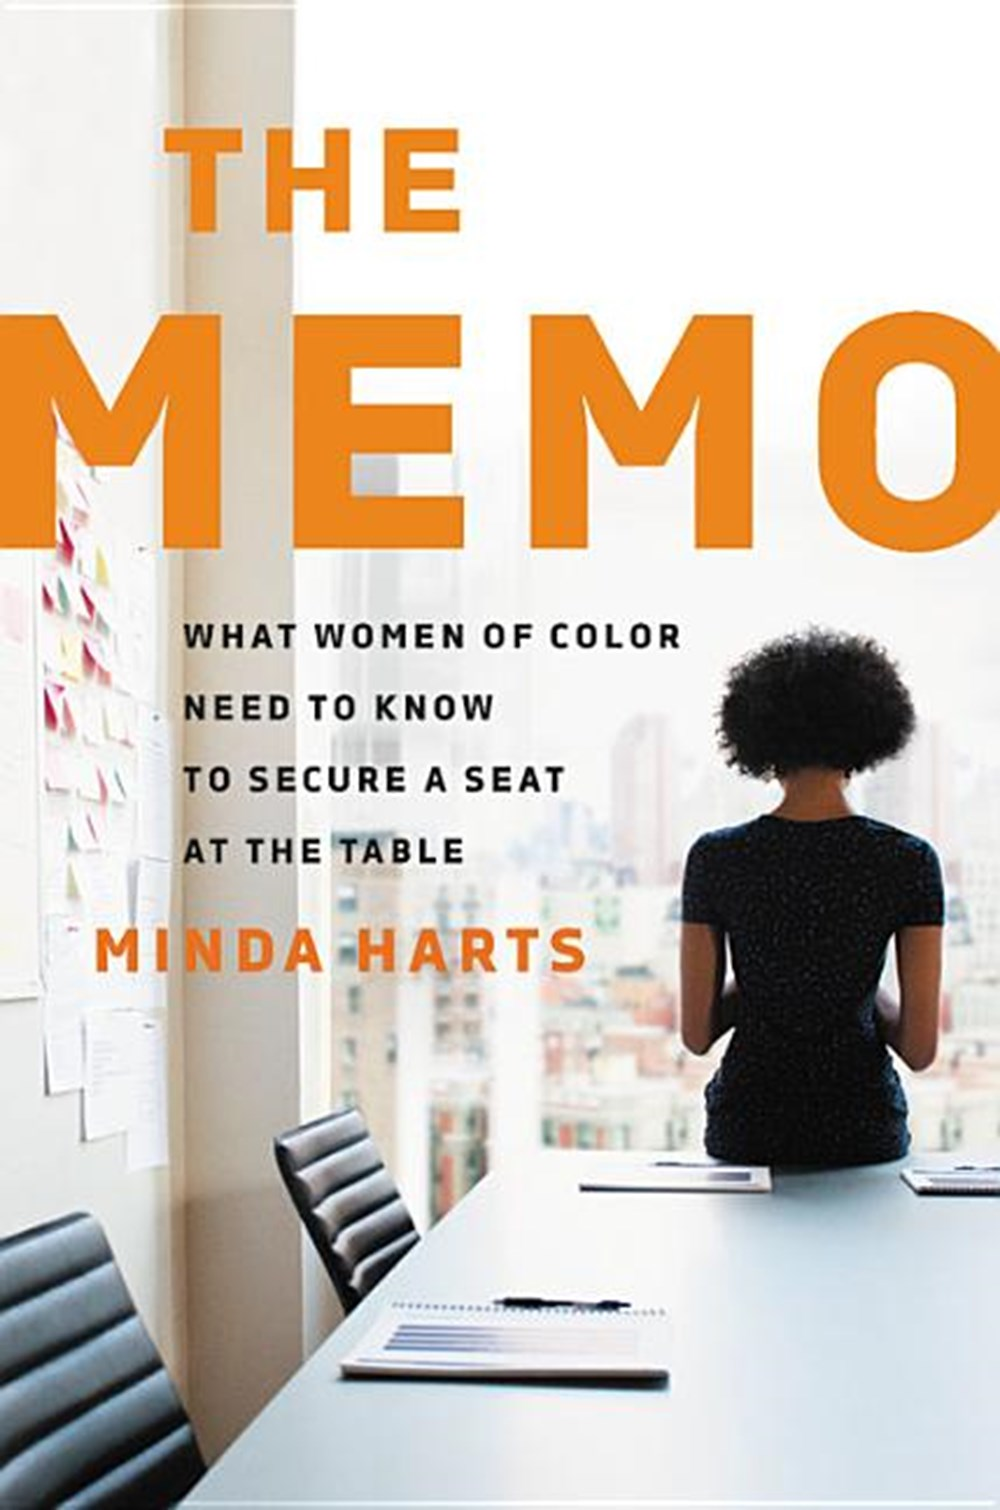 Memo What Women of Color Need to Know to Secure a Seat at the Table